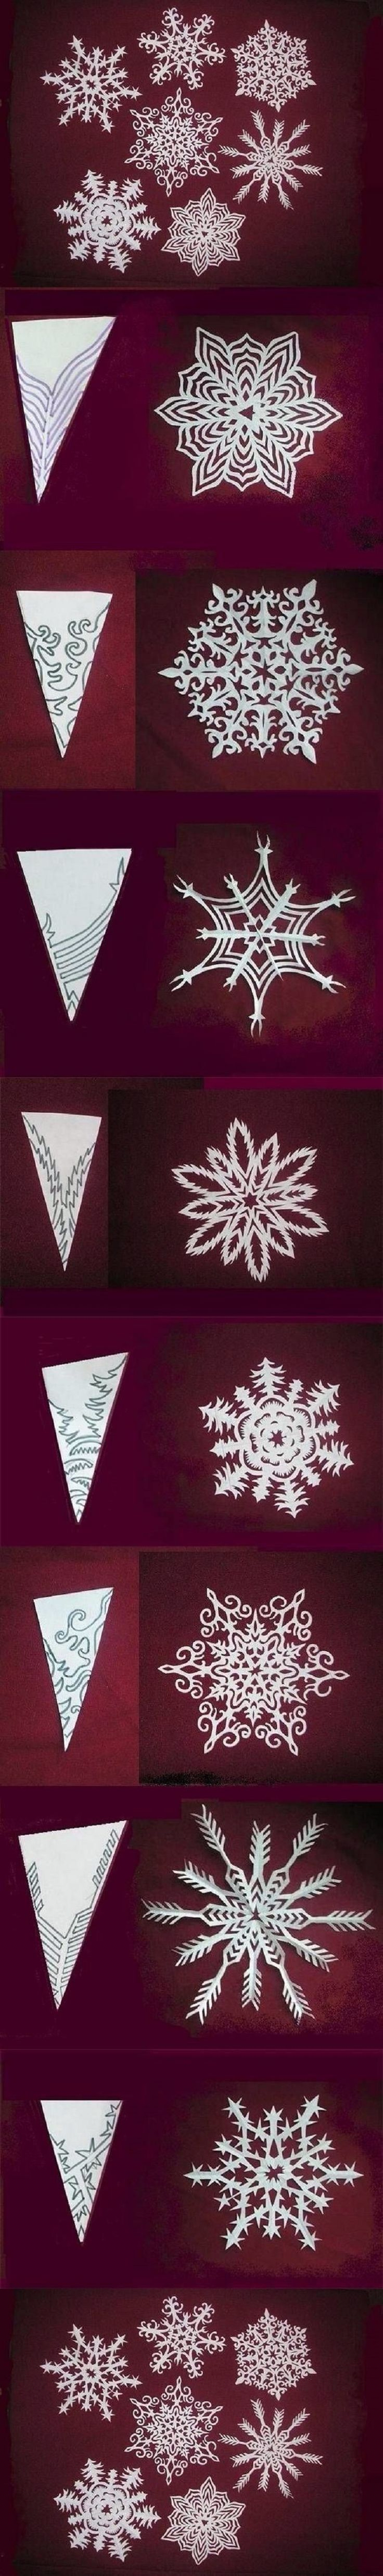 snowflakes_decor_6